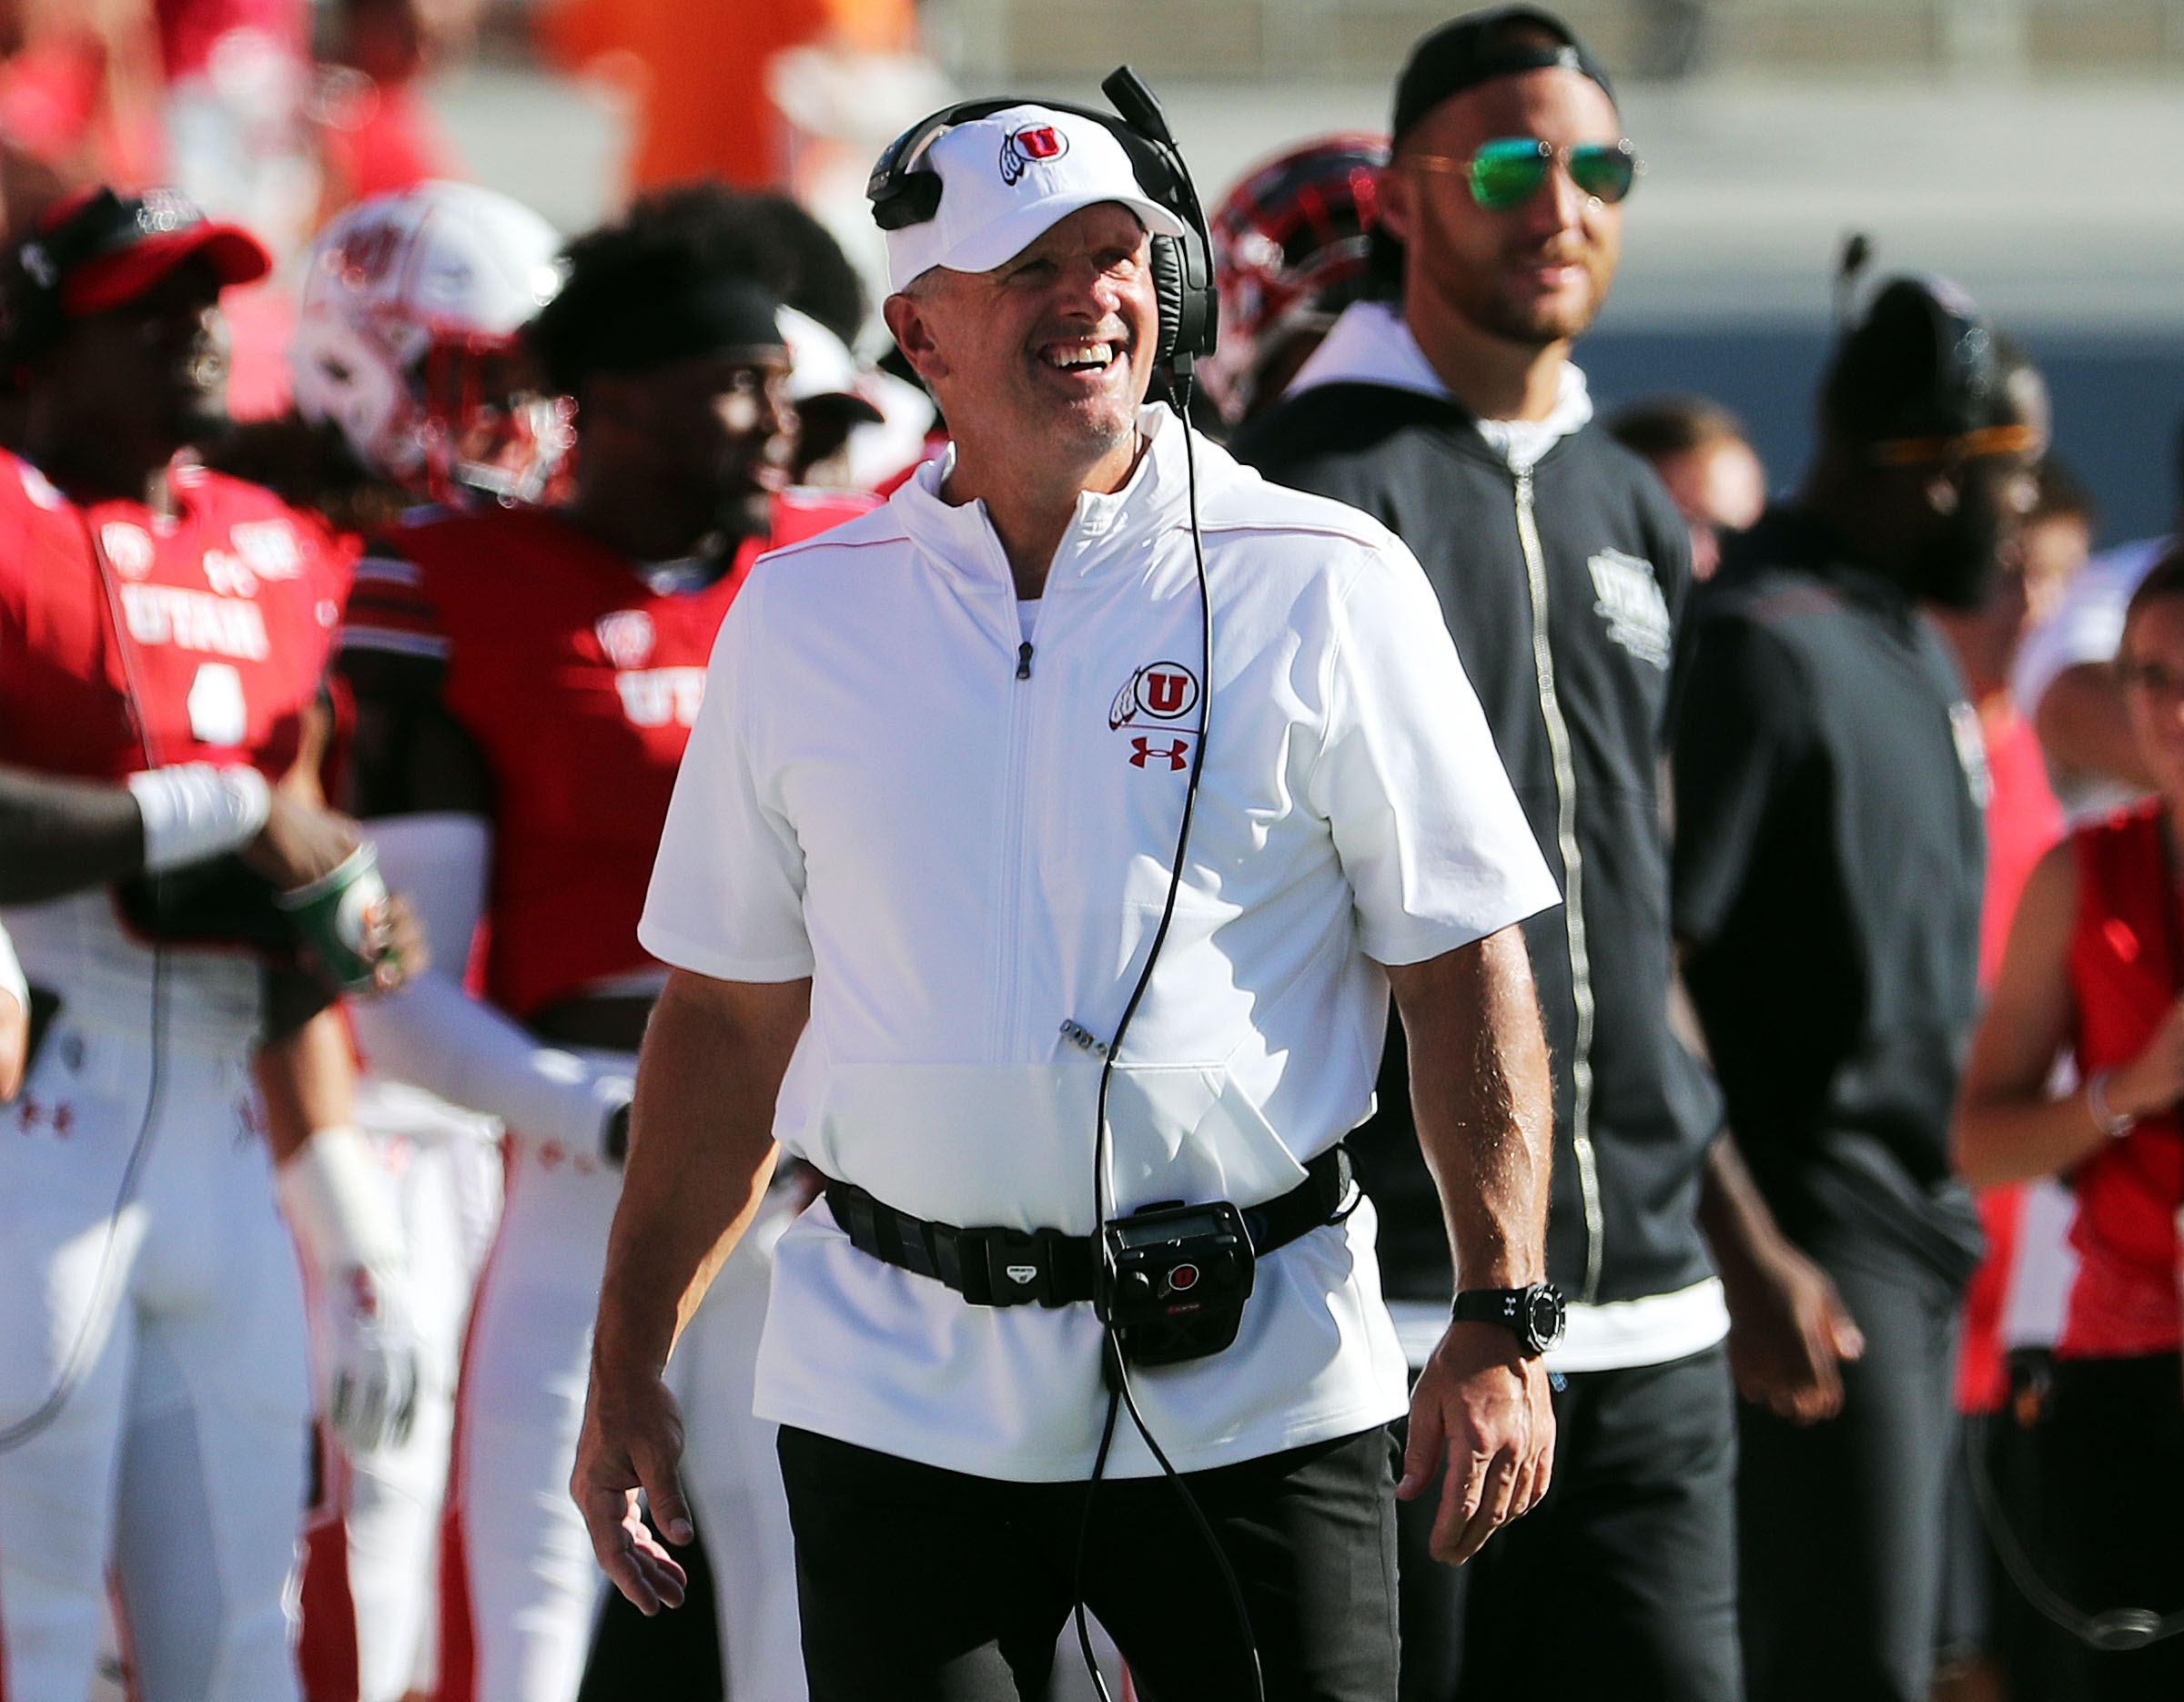 Utah Utes head coach Kyle Whittingham smiles near the end of the game against the Idaho State Bengals during NCAA football in Salt Lake City on Saturday, Sept. 14, 2019.